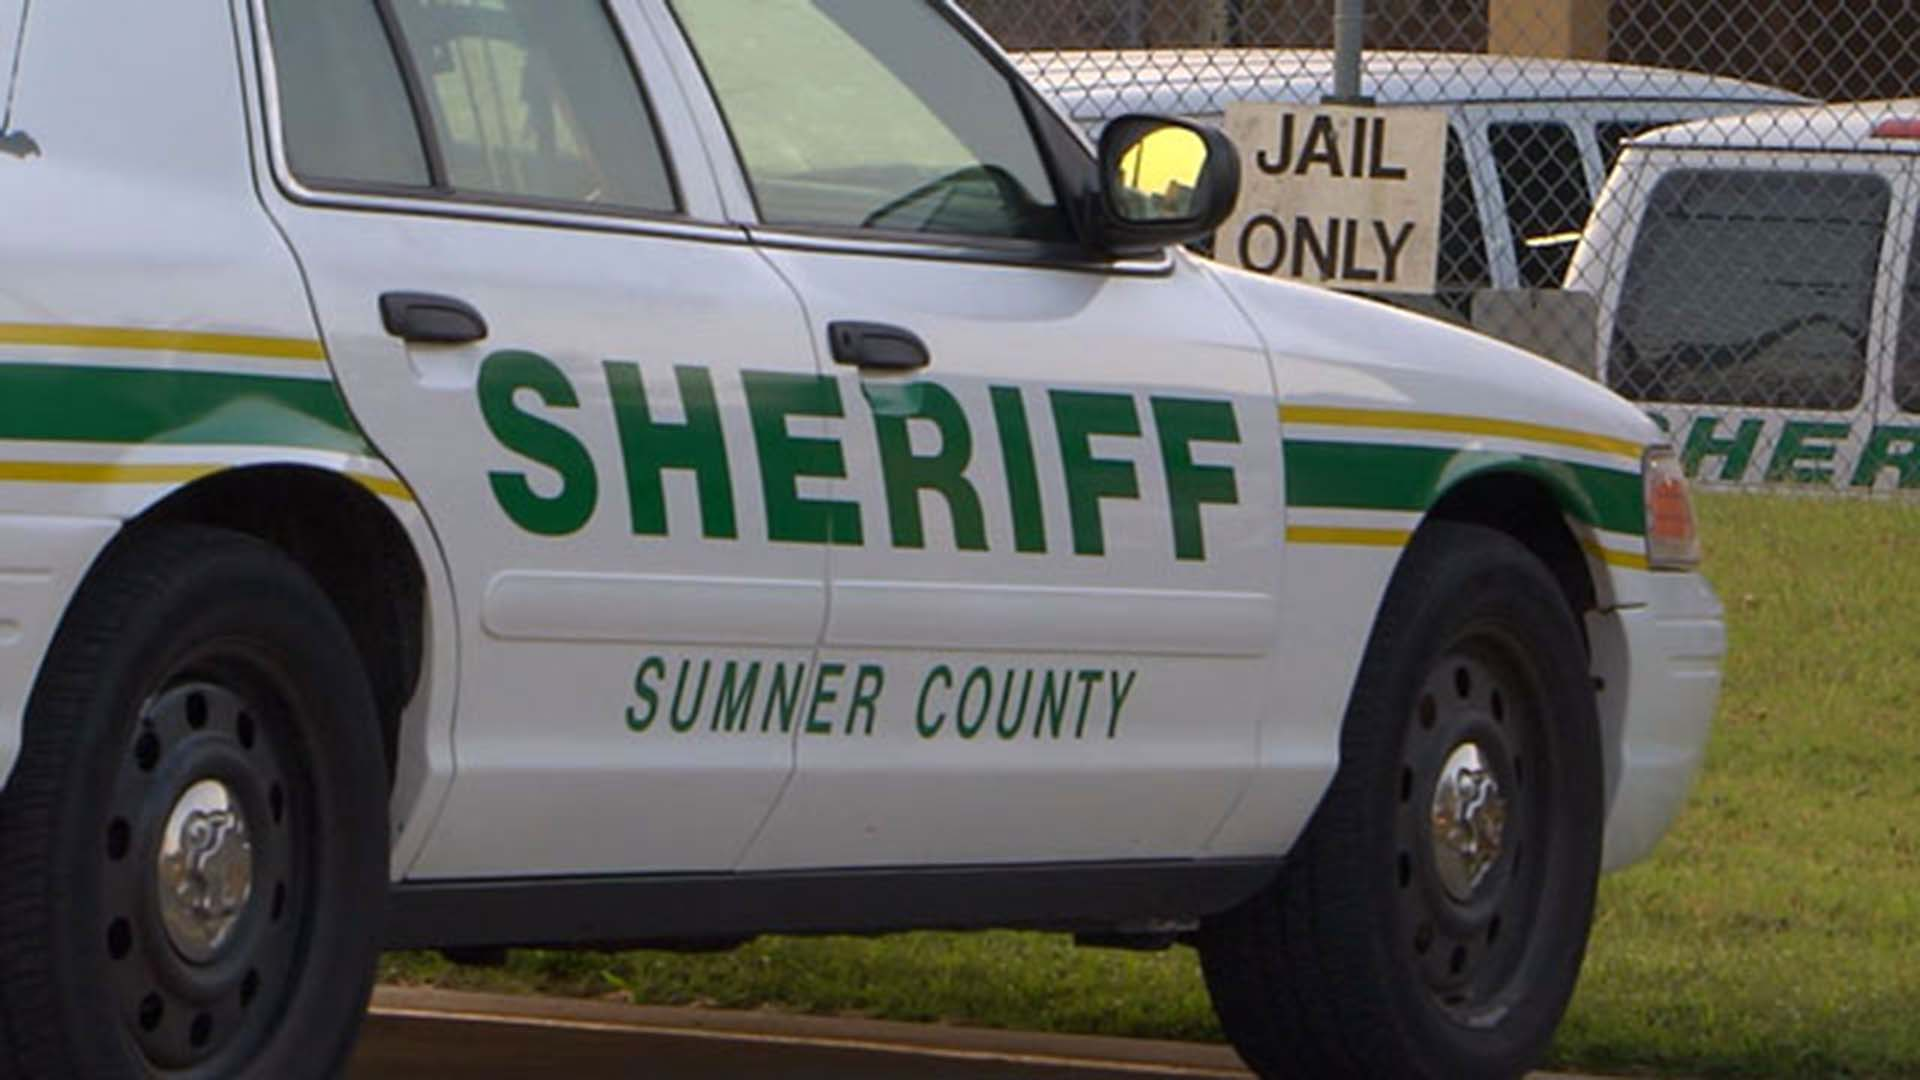 Sumner County Tn Sheriff Department